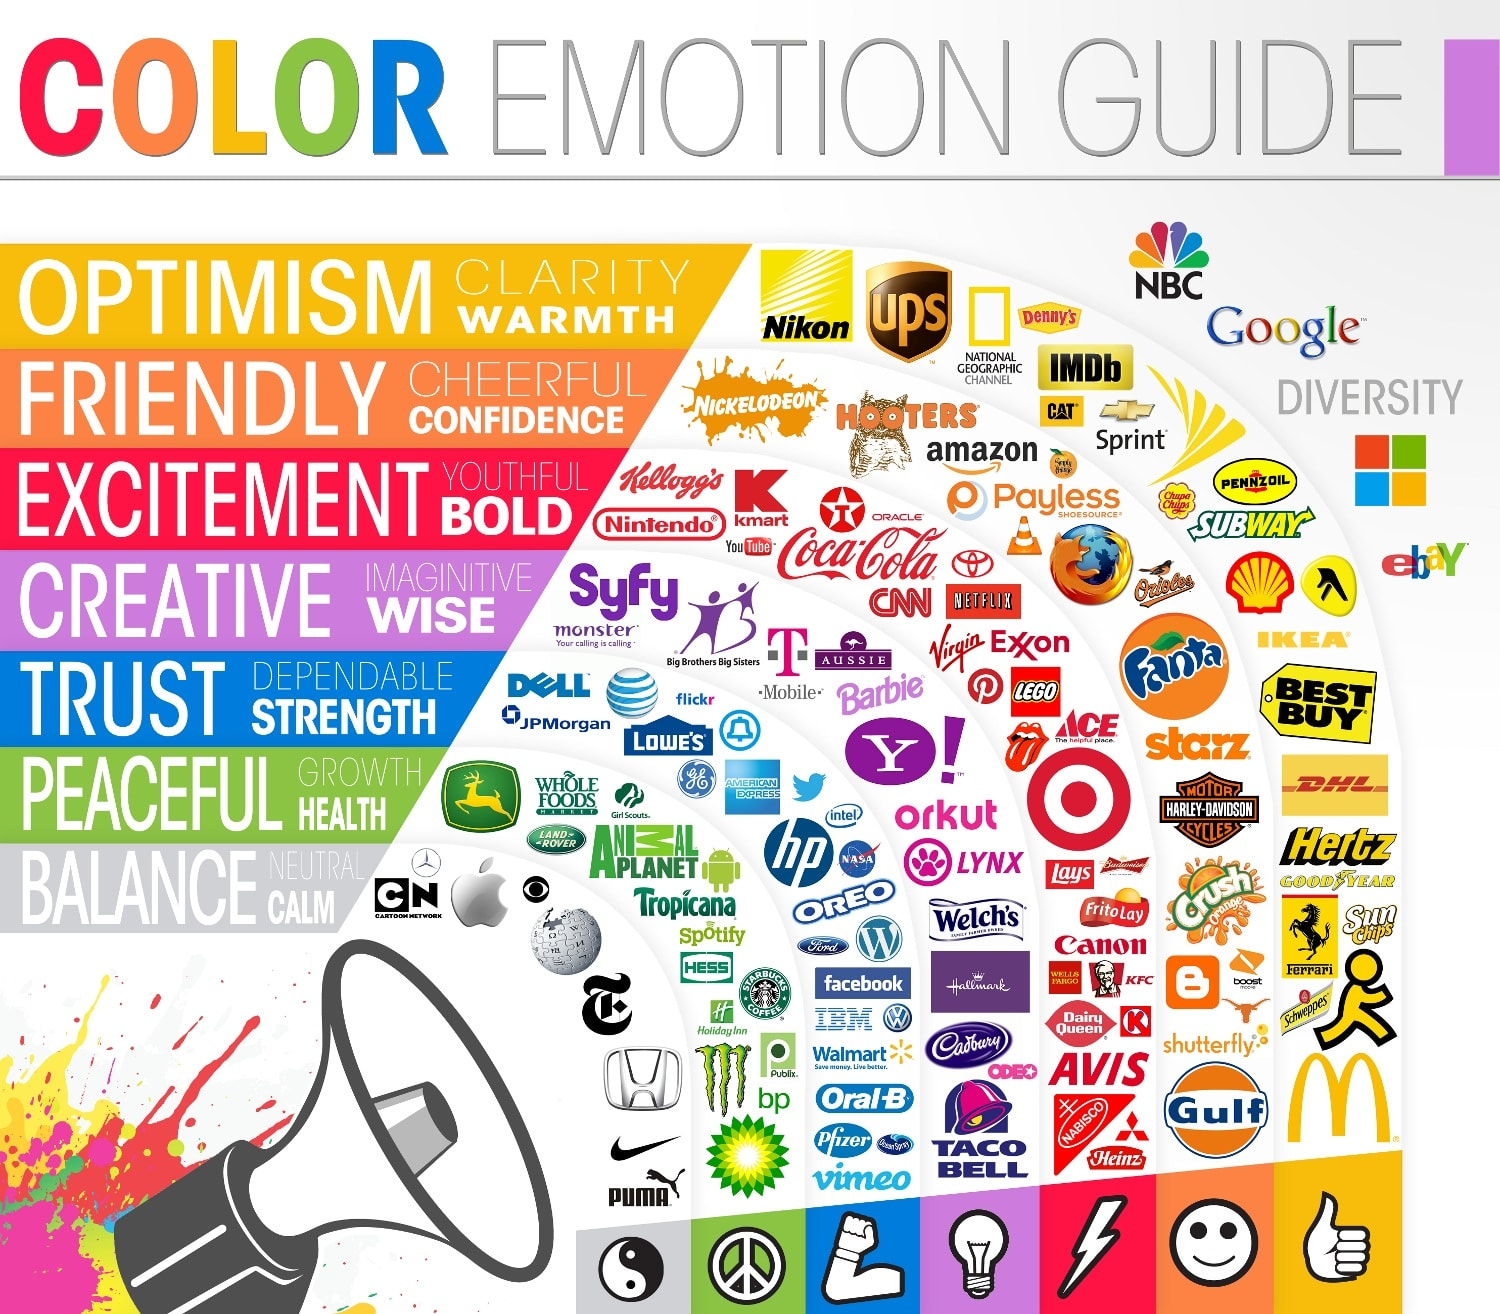 Brands by colour association.